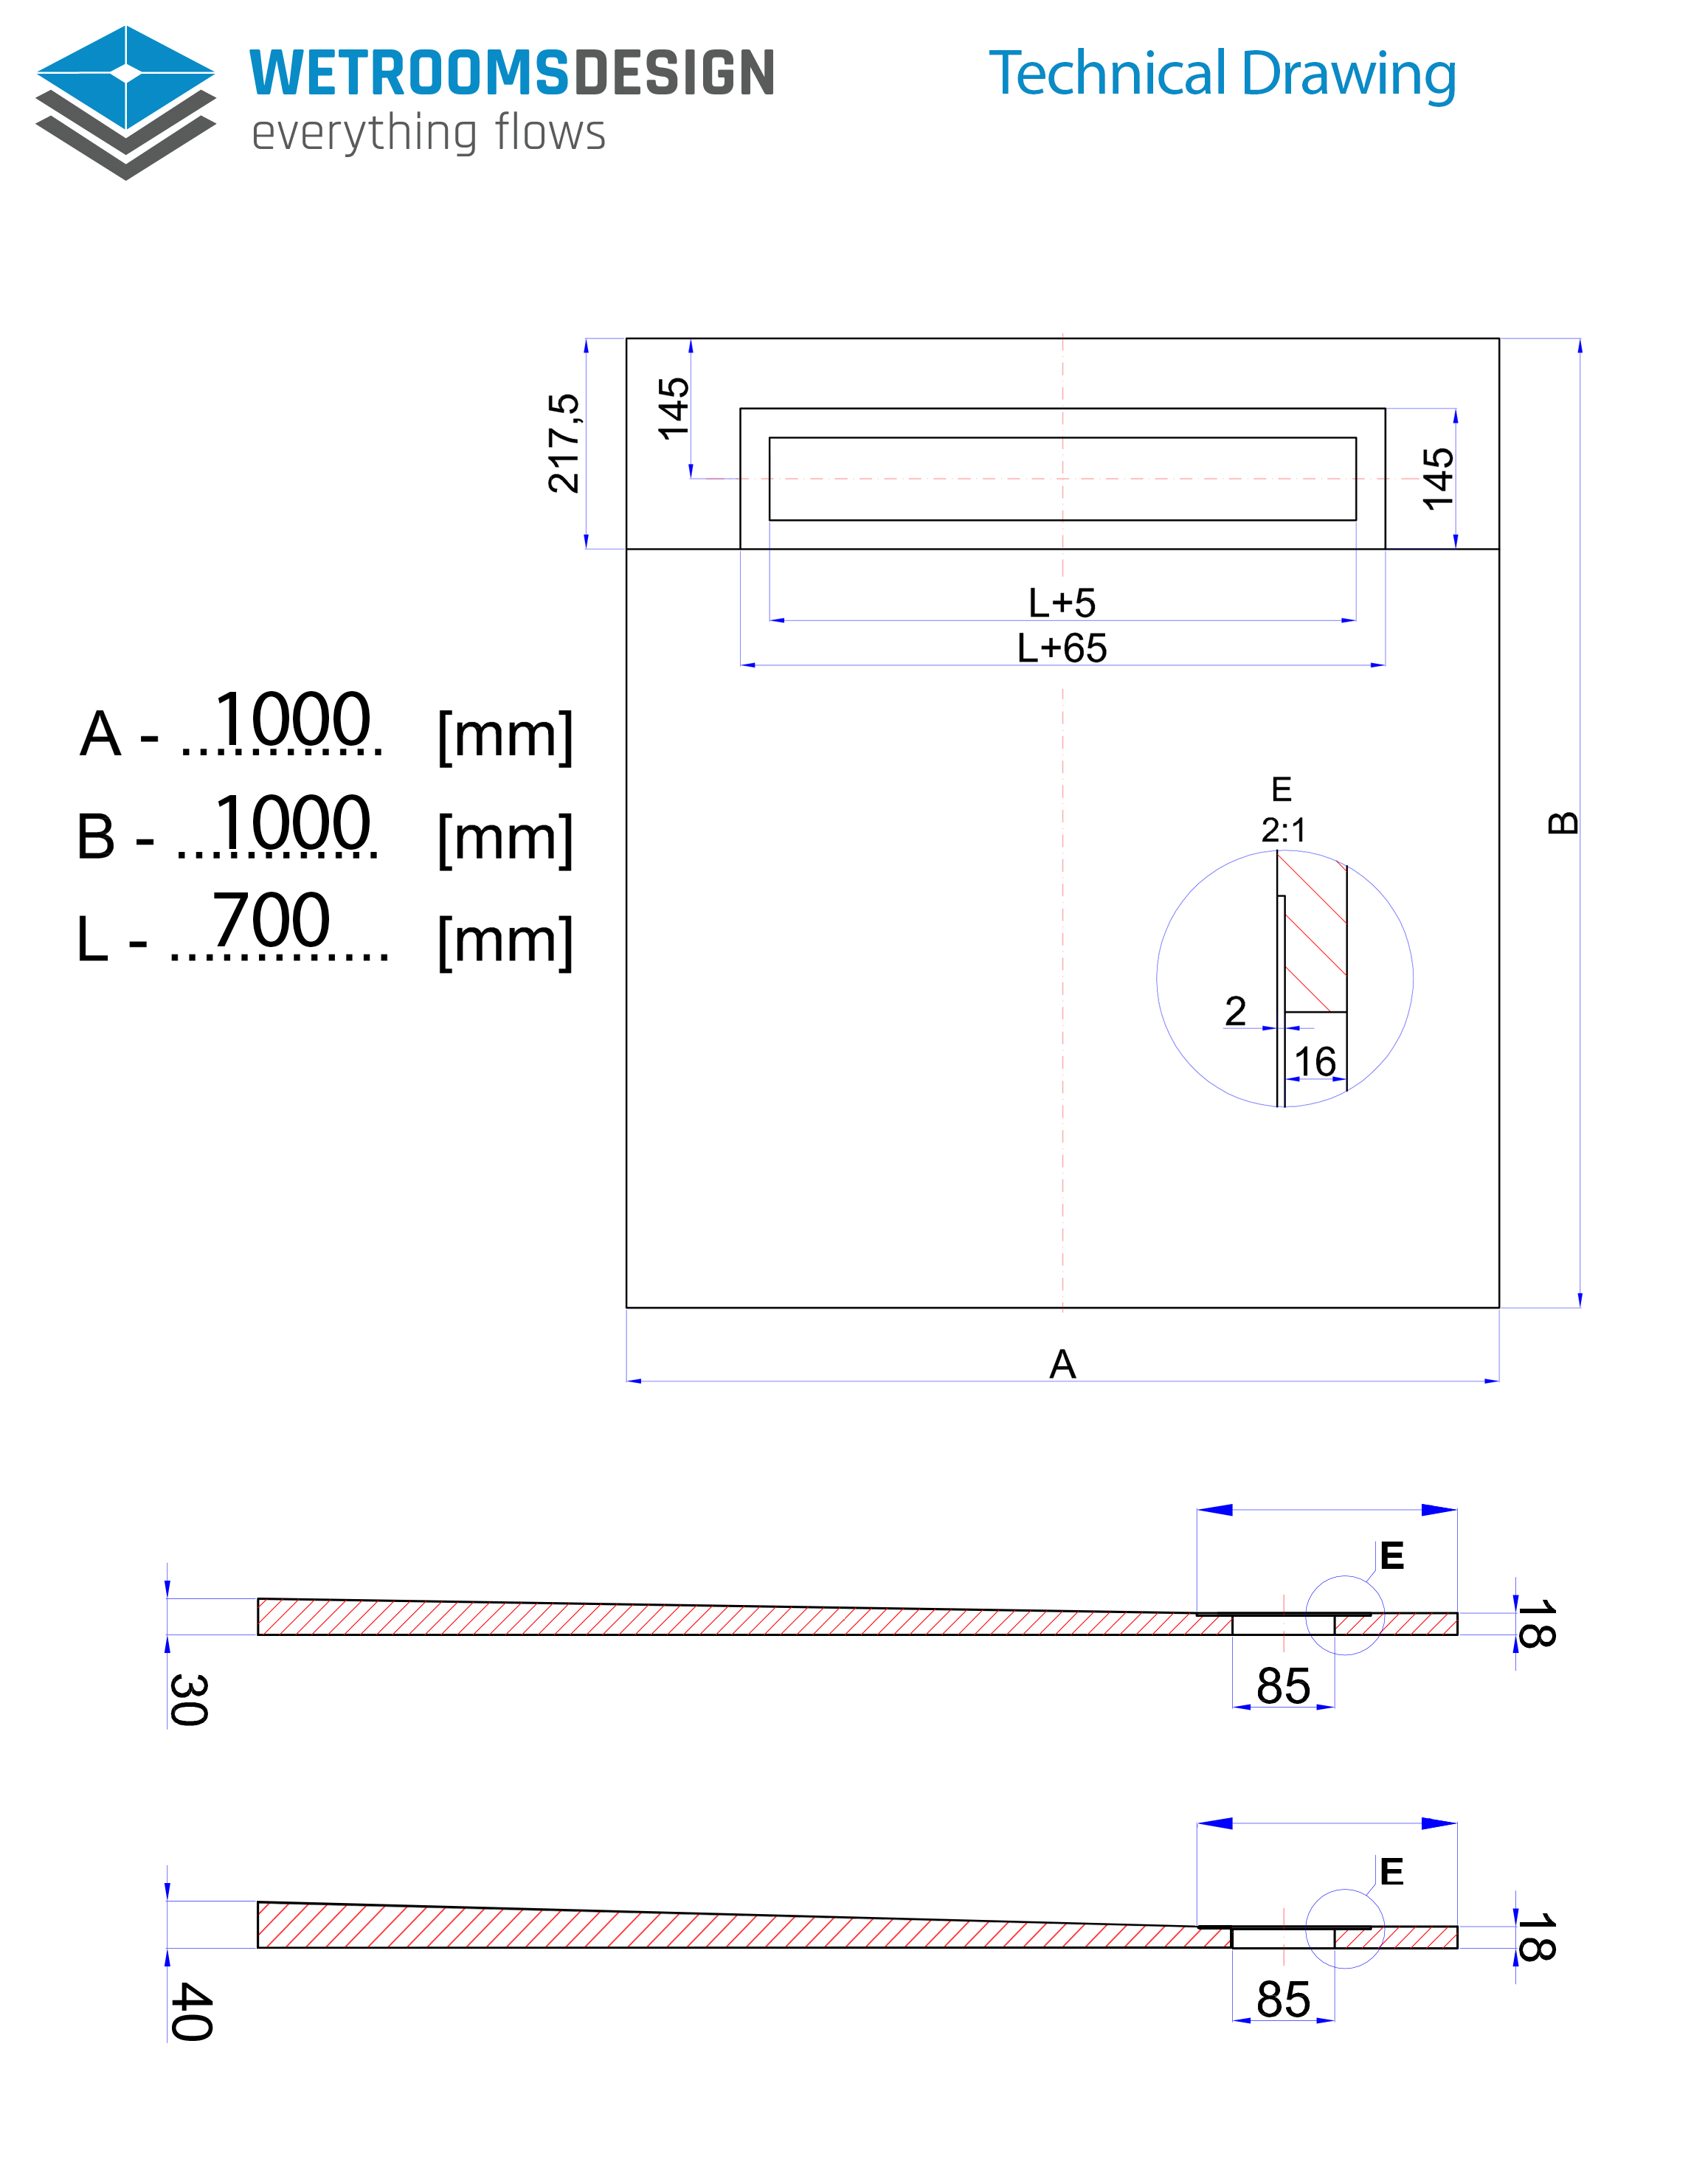 Technical Drawing OneWay Fall Showerlay Wetrooms Design